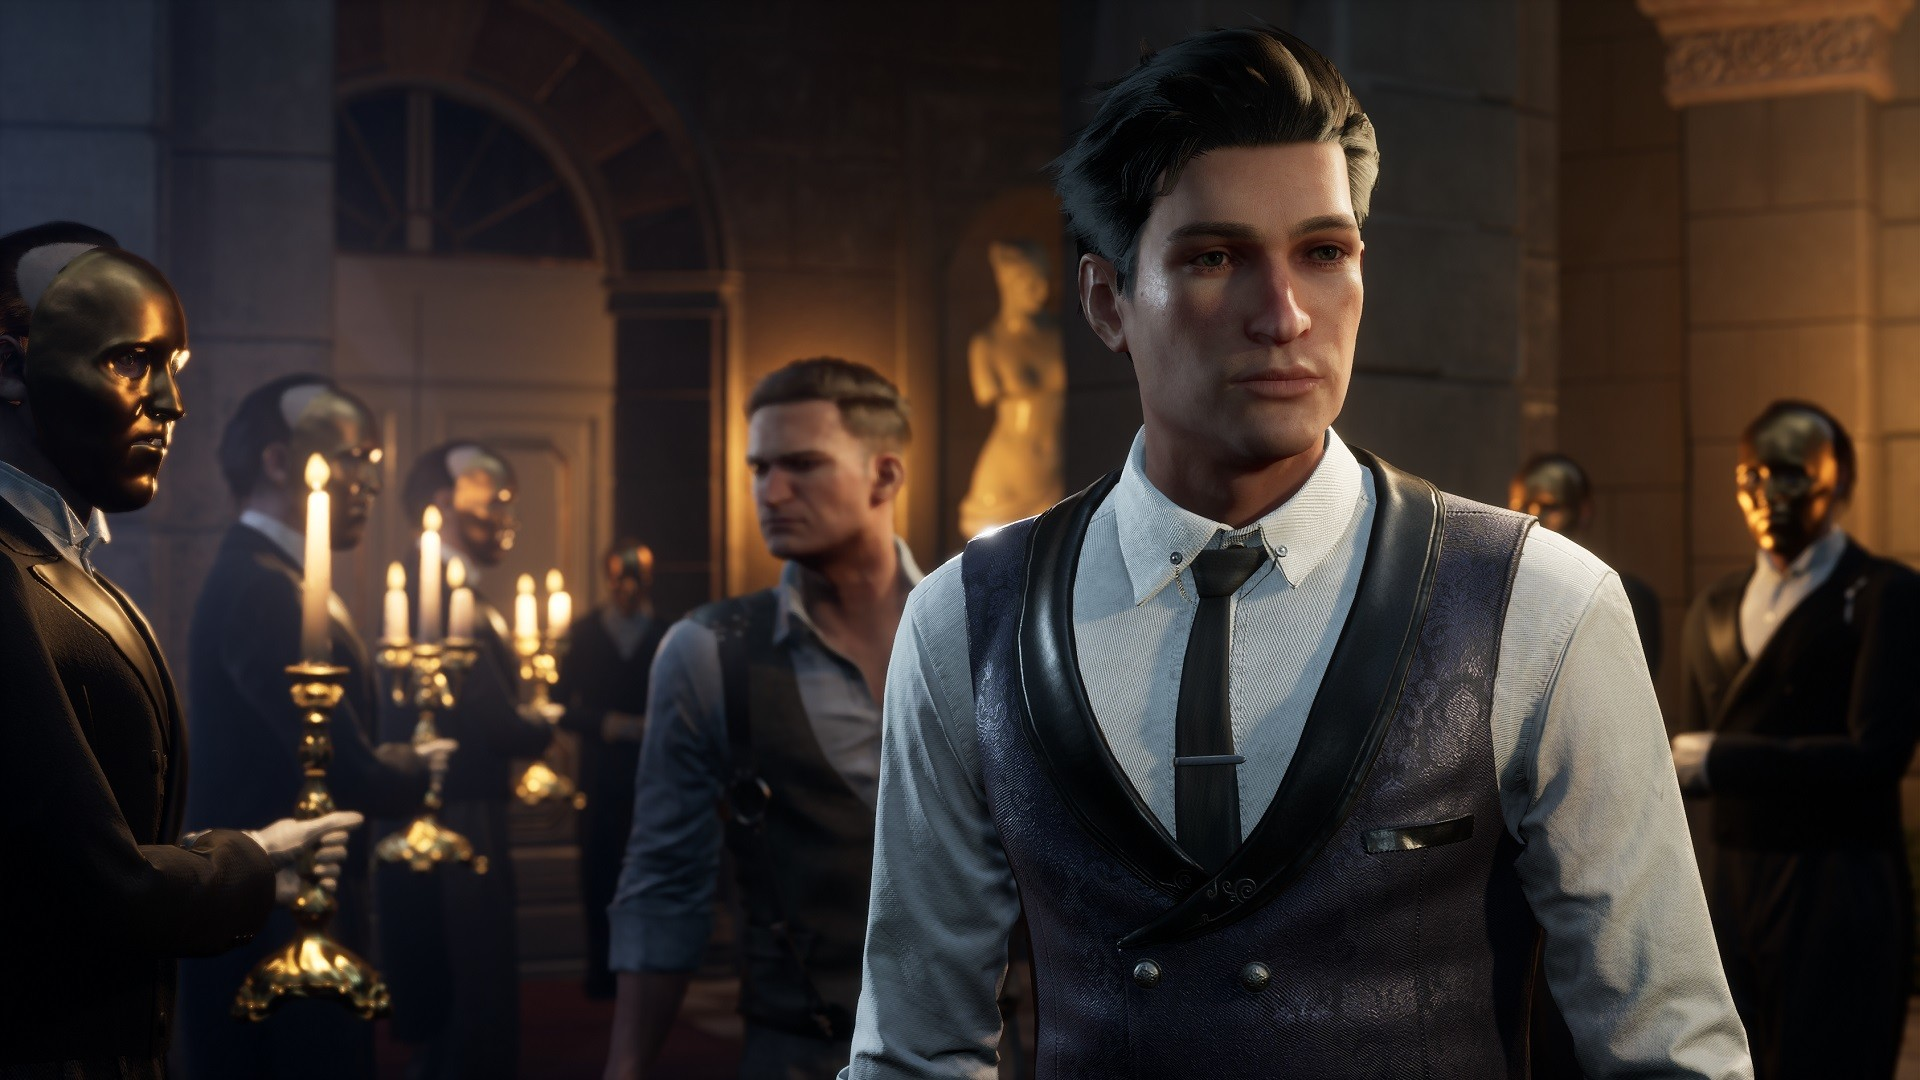 The new gameplay from Sherlock Holmes: Chapter One presents a detective in a dress